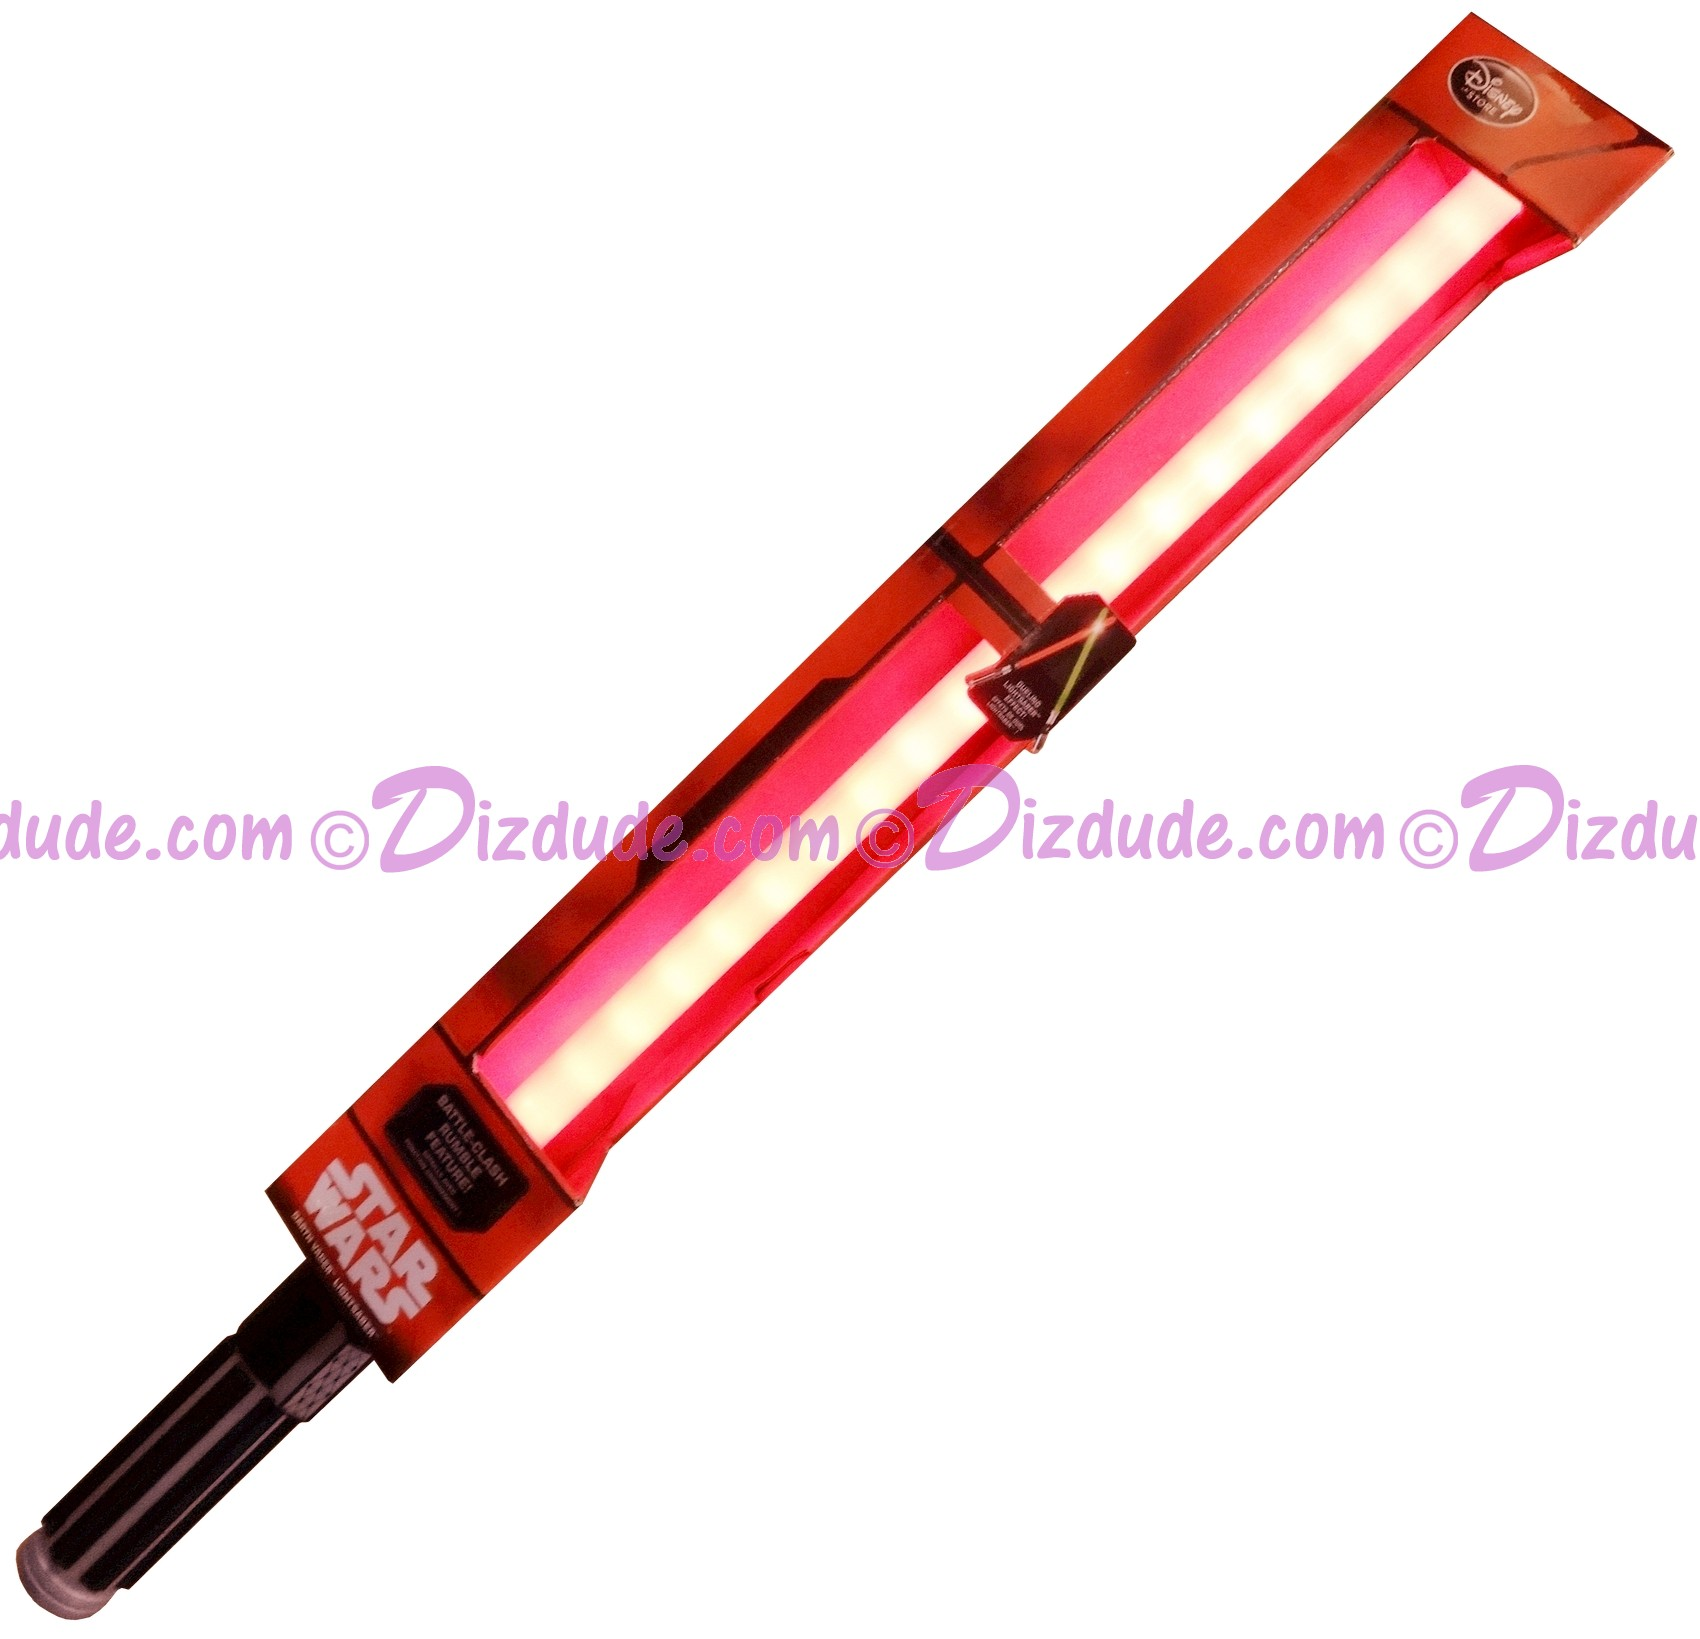 Disney Star Wars Red Darth Vader Lightsaber with Battle Clash Rumble Feature and Lights & Sound © Dizdude.com